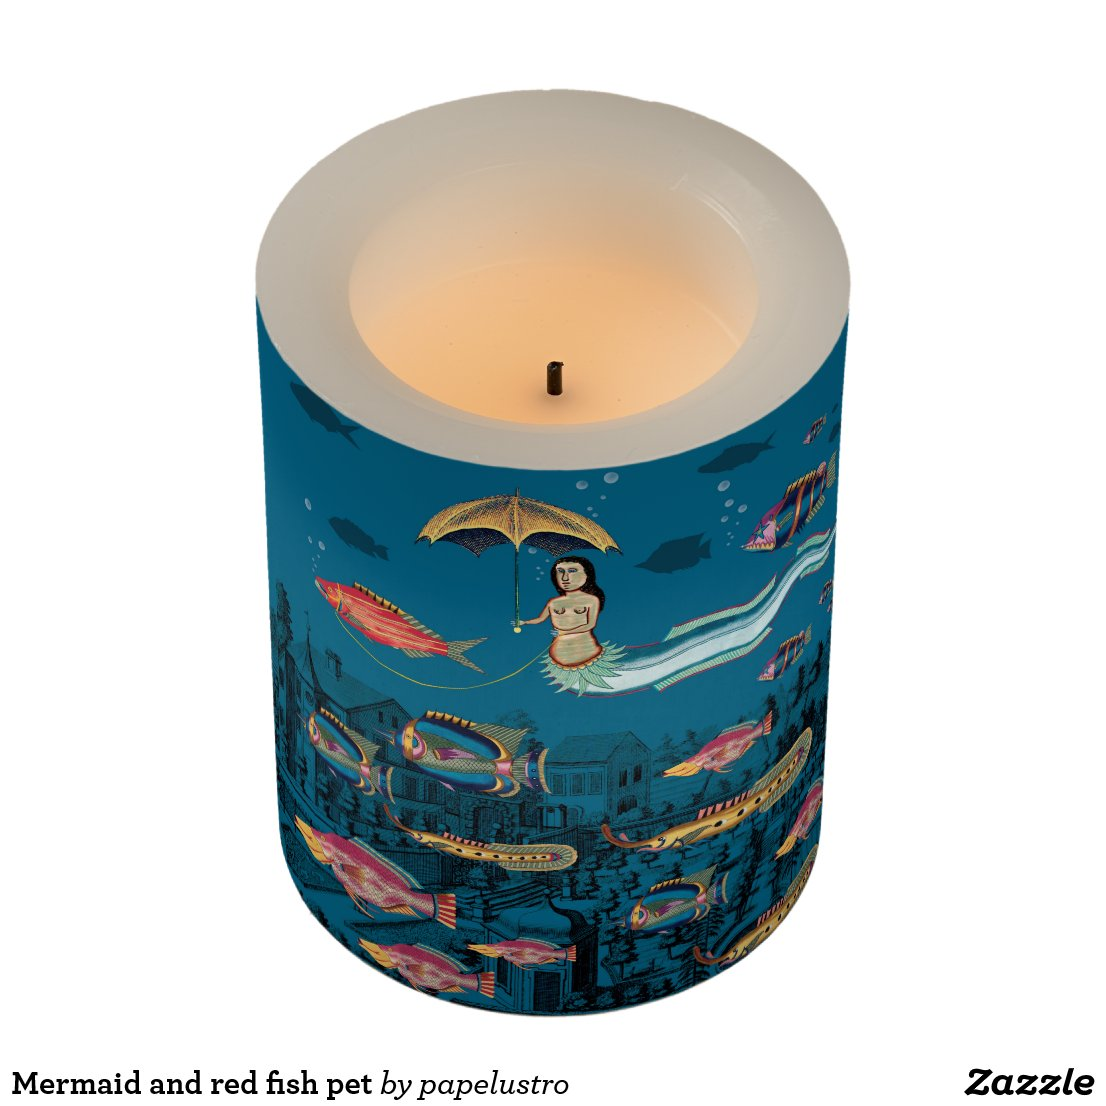 Mermaid and red fish pet flameless candle